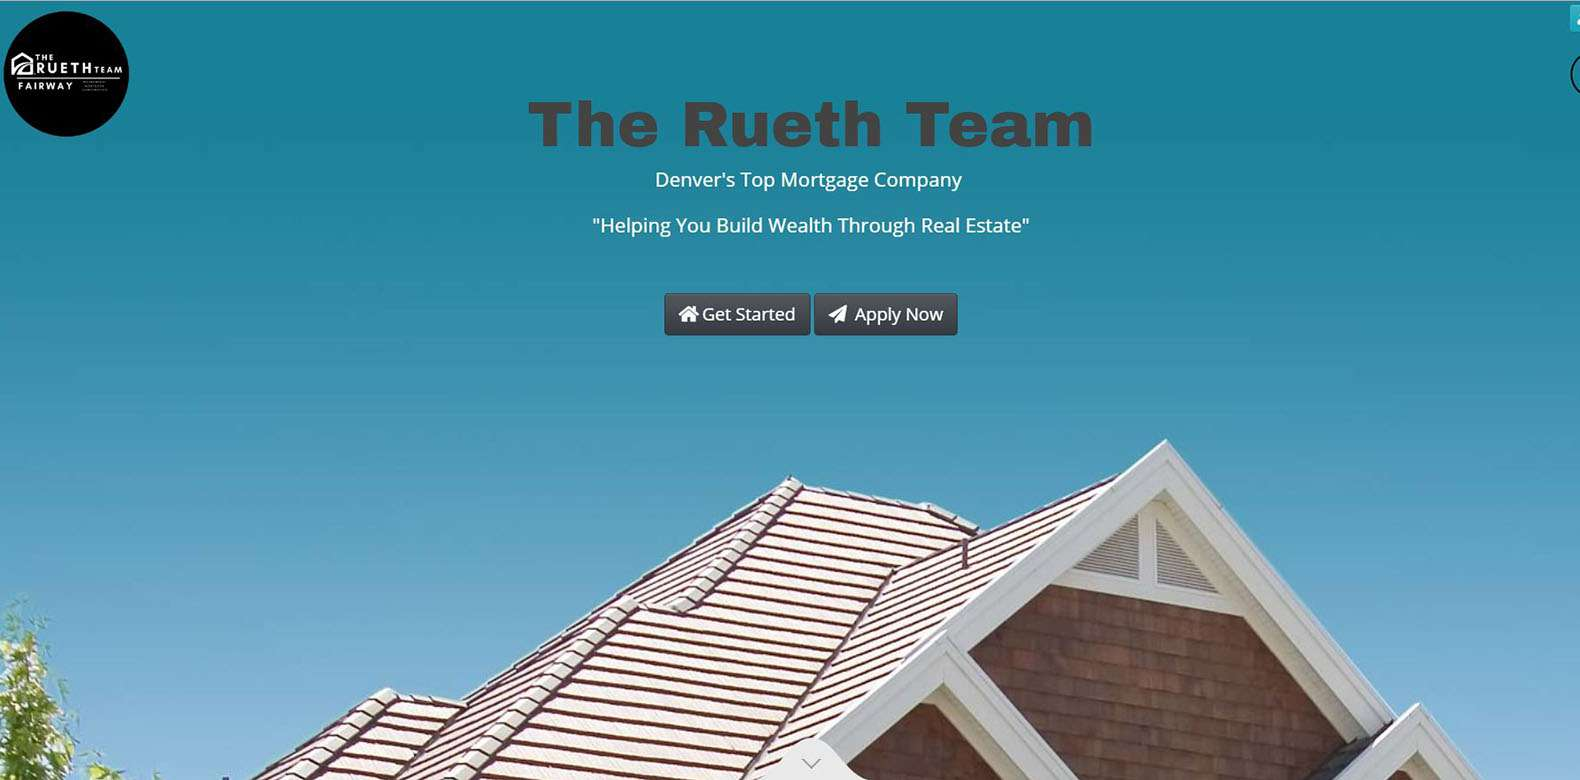 New Website Launch: The Rueth Team